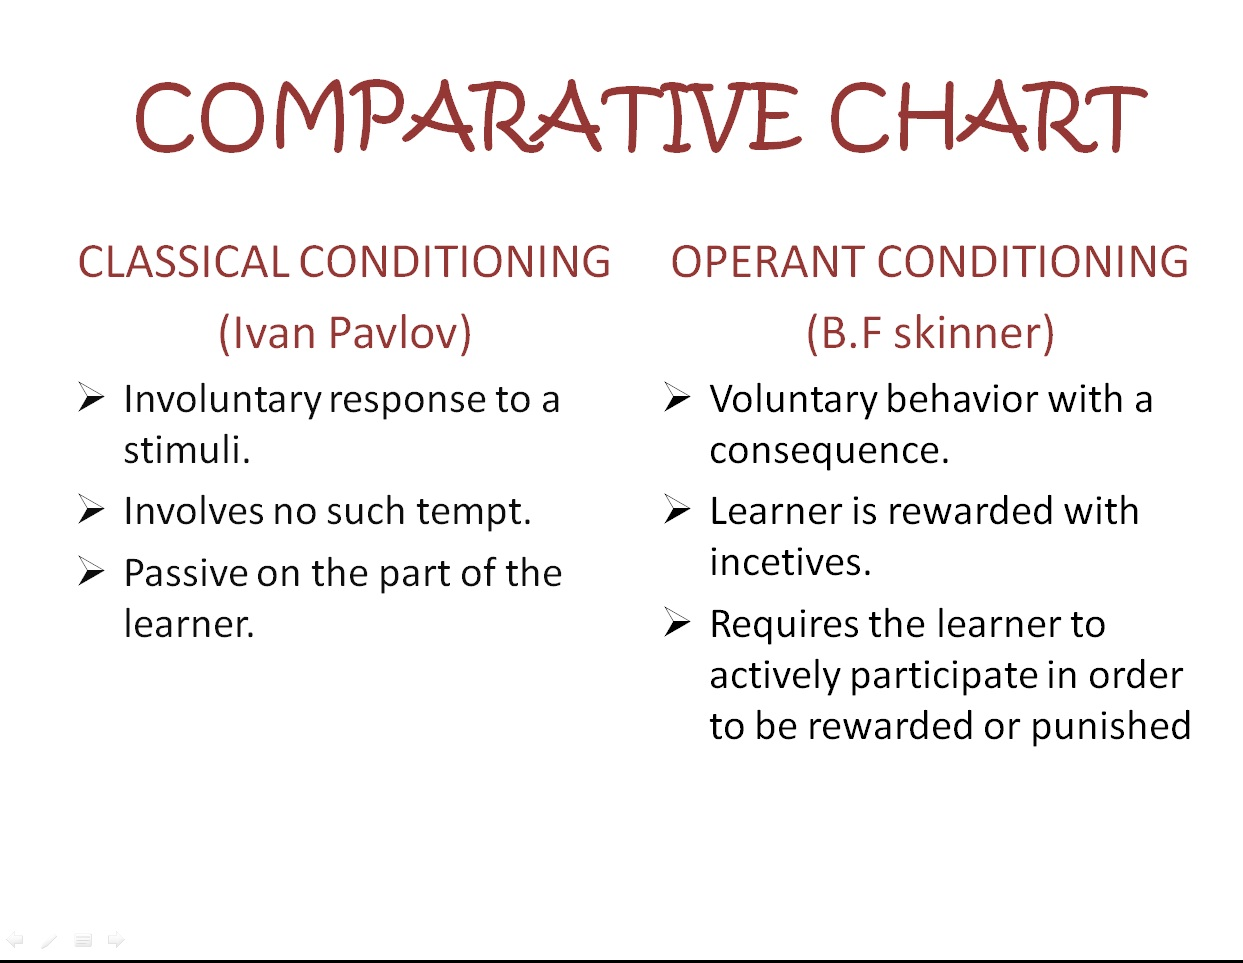 behaviourism theory comparative chart classical and operant  comparative chart classical and operant conditioning